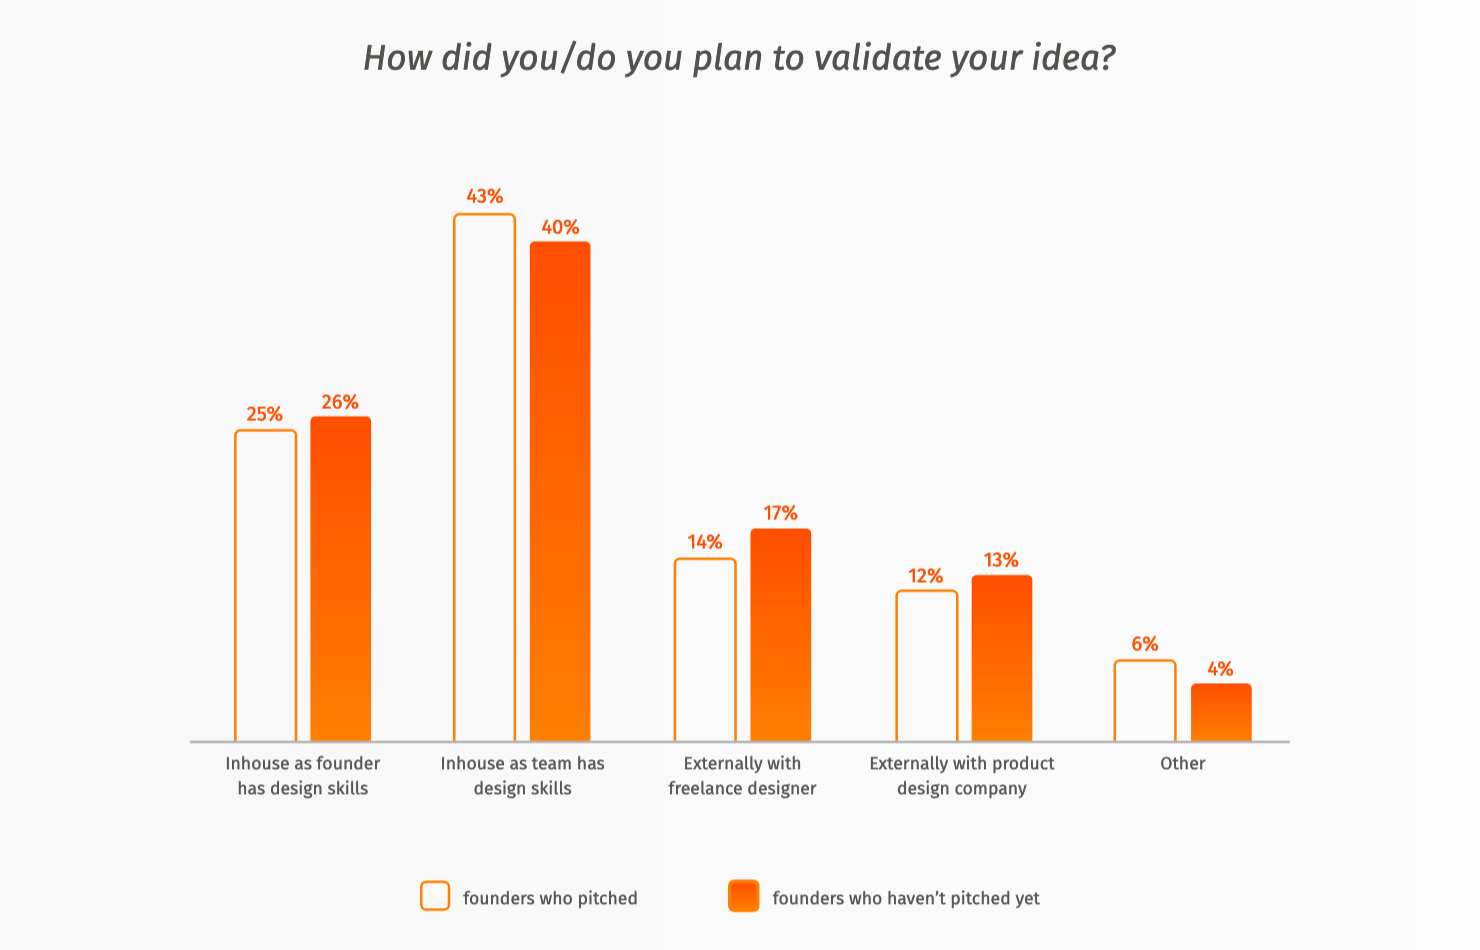 How did or do you plan to validate business idea